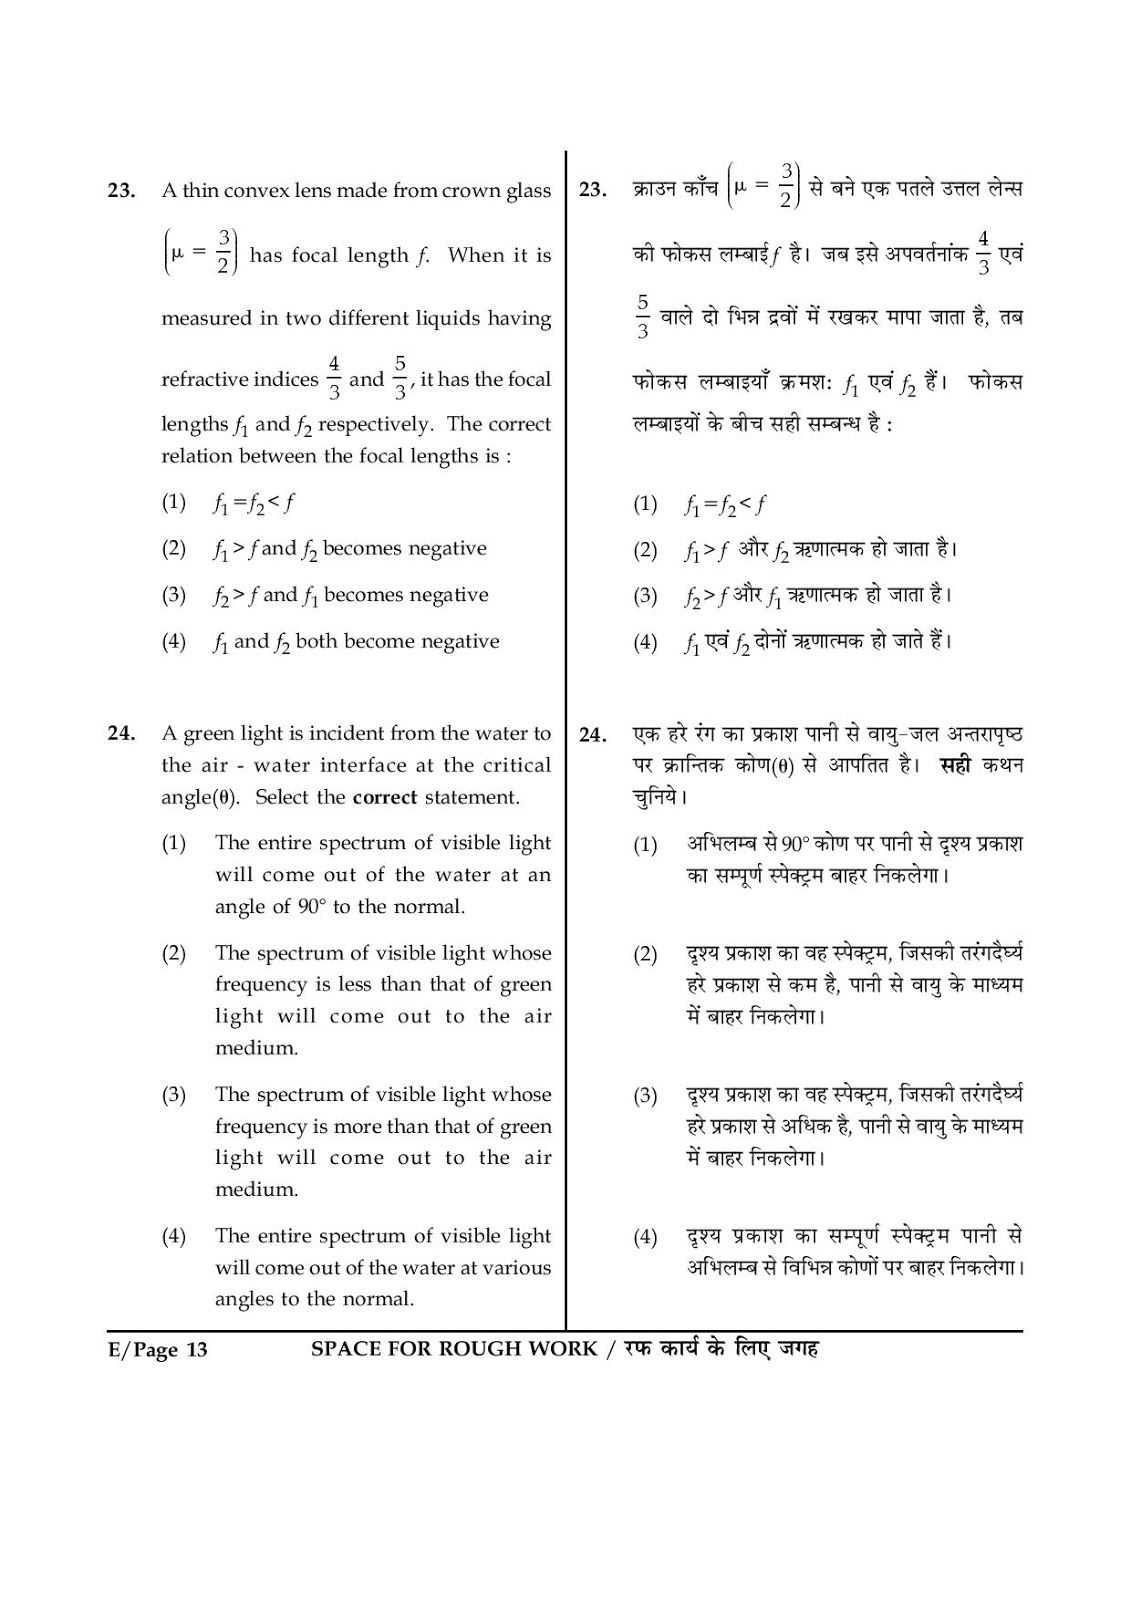 iit jee mains Entrance exam question paper 2015